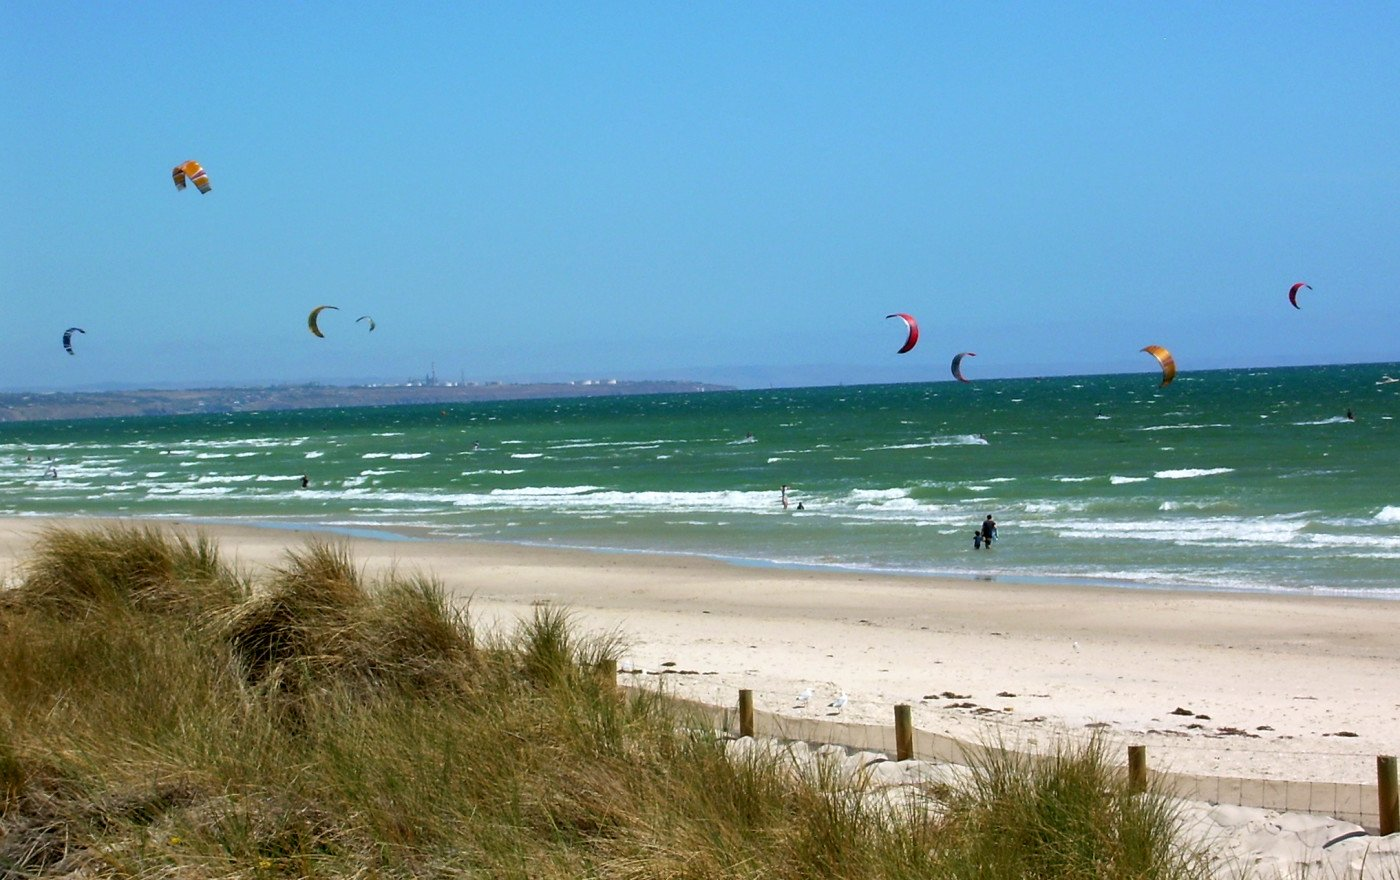 Windy day on Henley Beach, Adelaide. Photo by Kerry J via Flickr CC